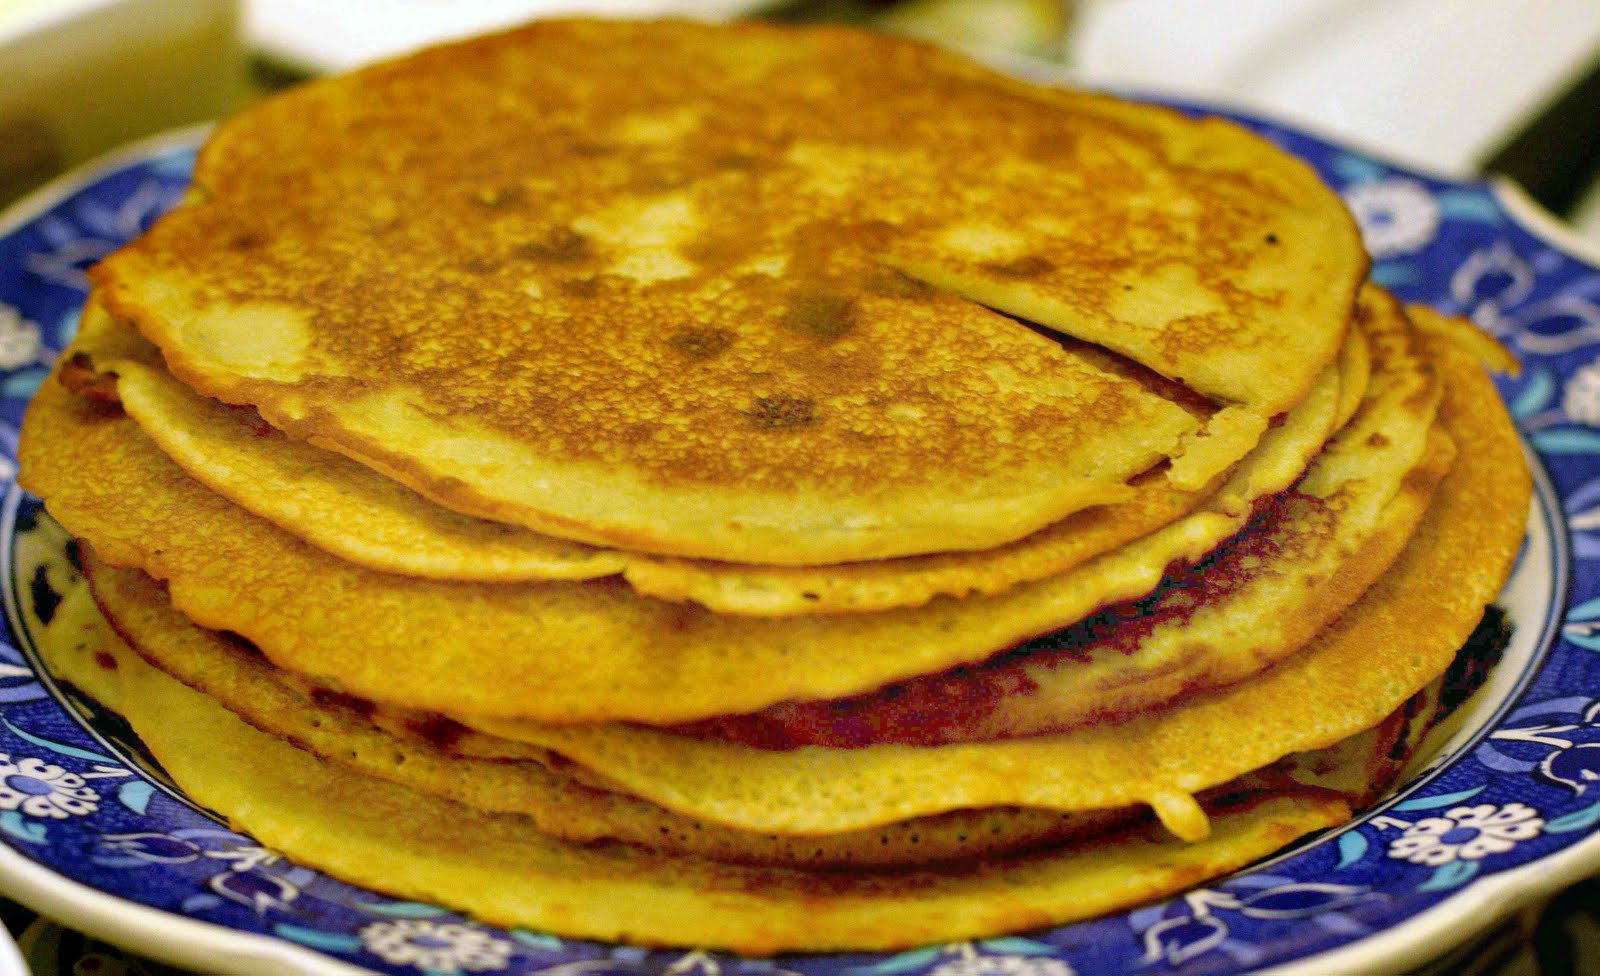 Dairy Free Egg Free Pancakes  Dublin With Food Allergies Egg Free Wheat Free Dairy